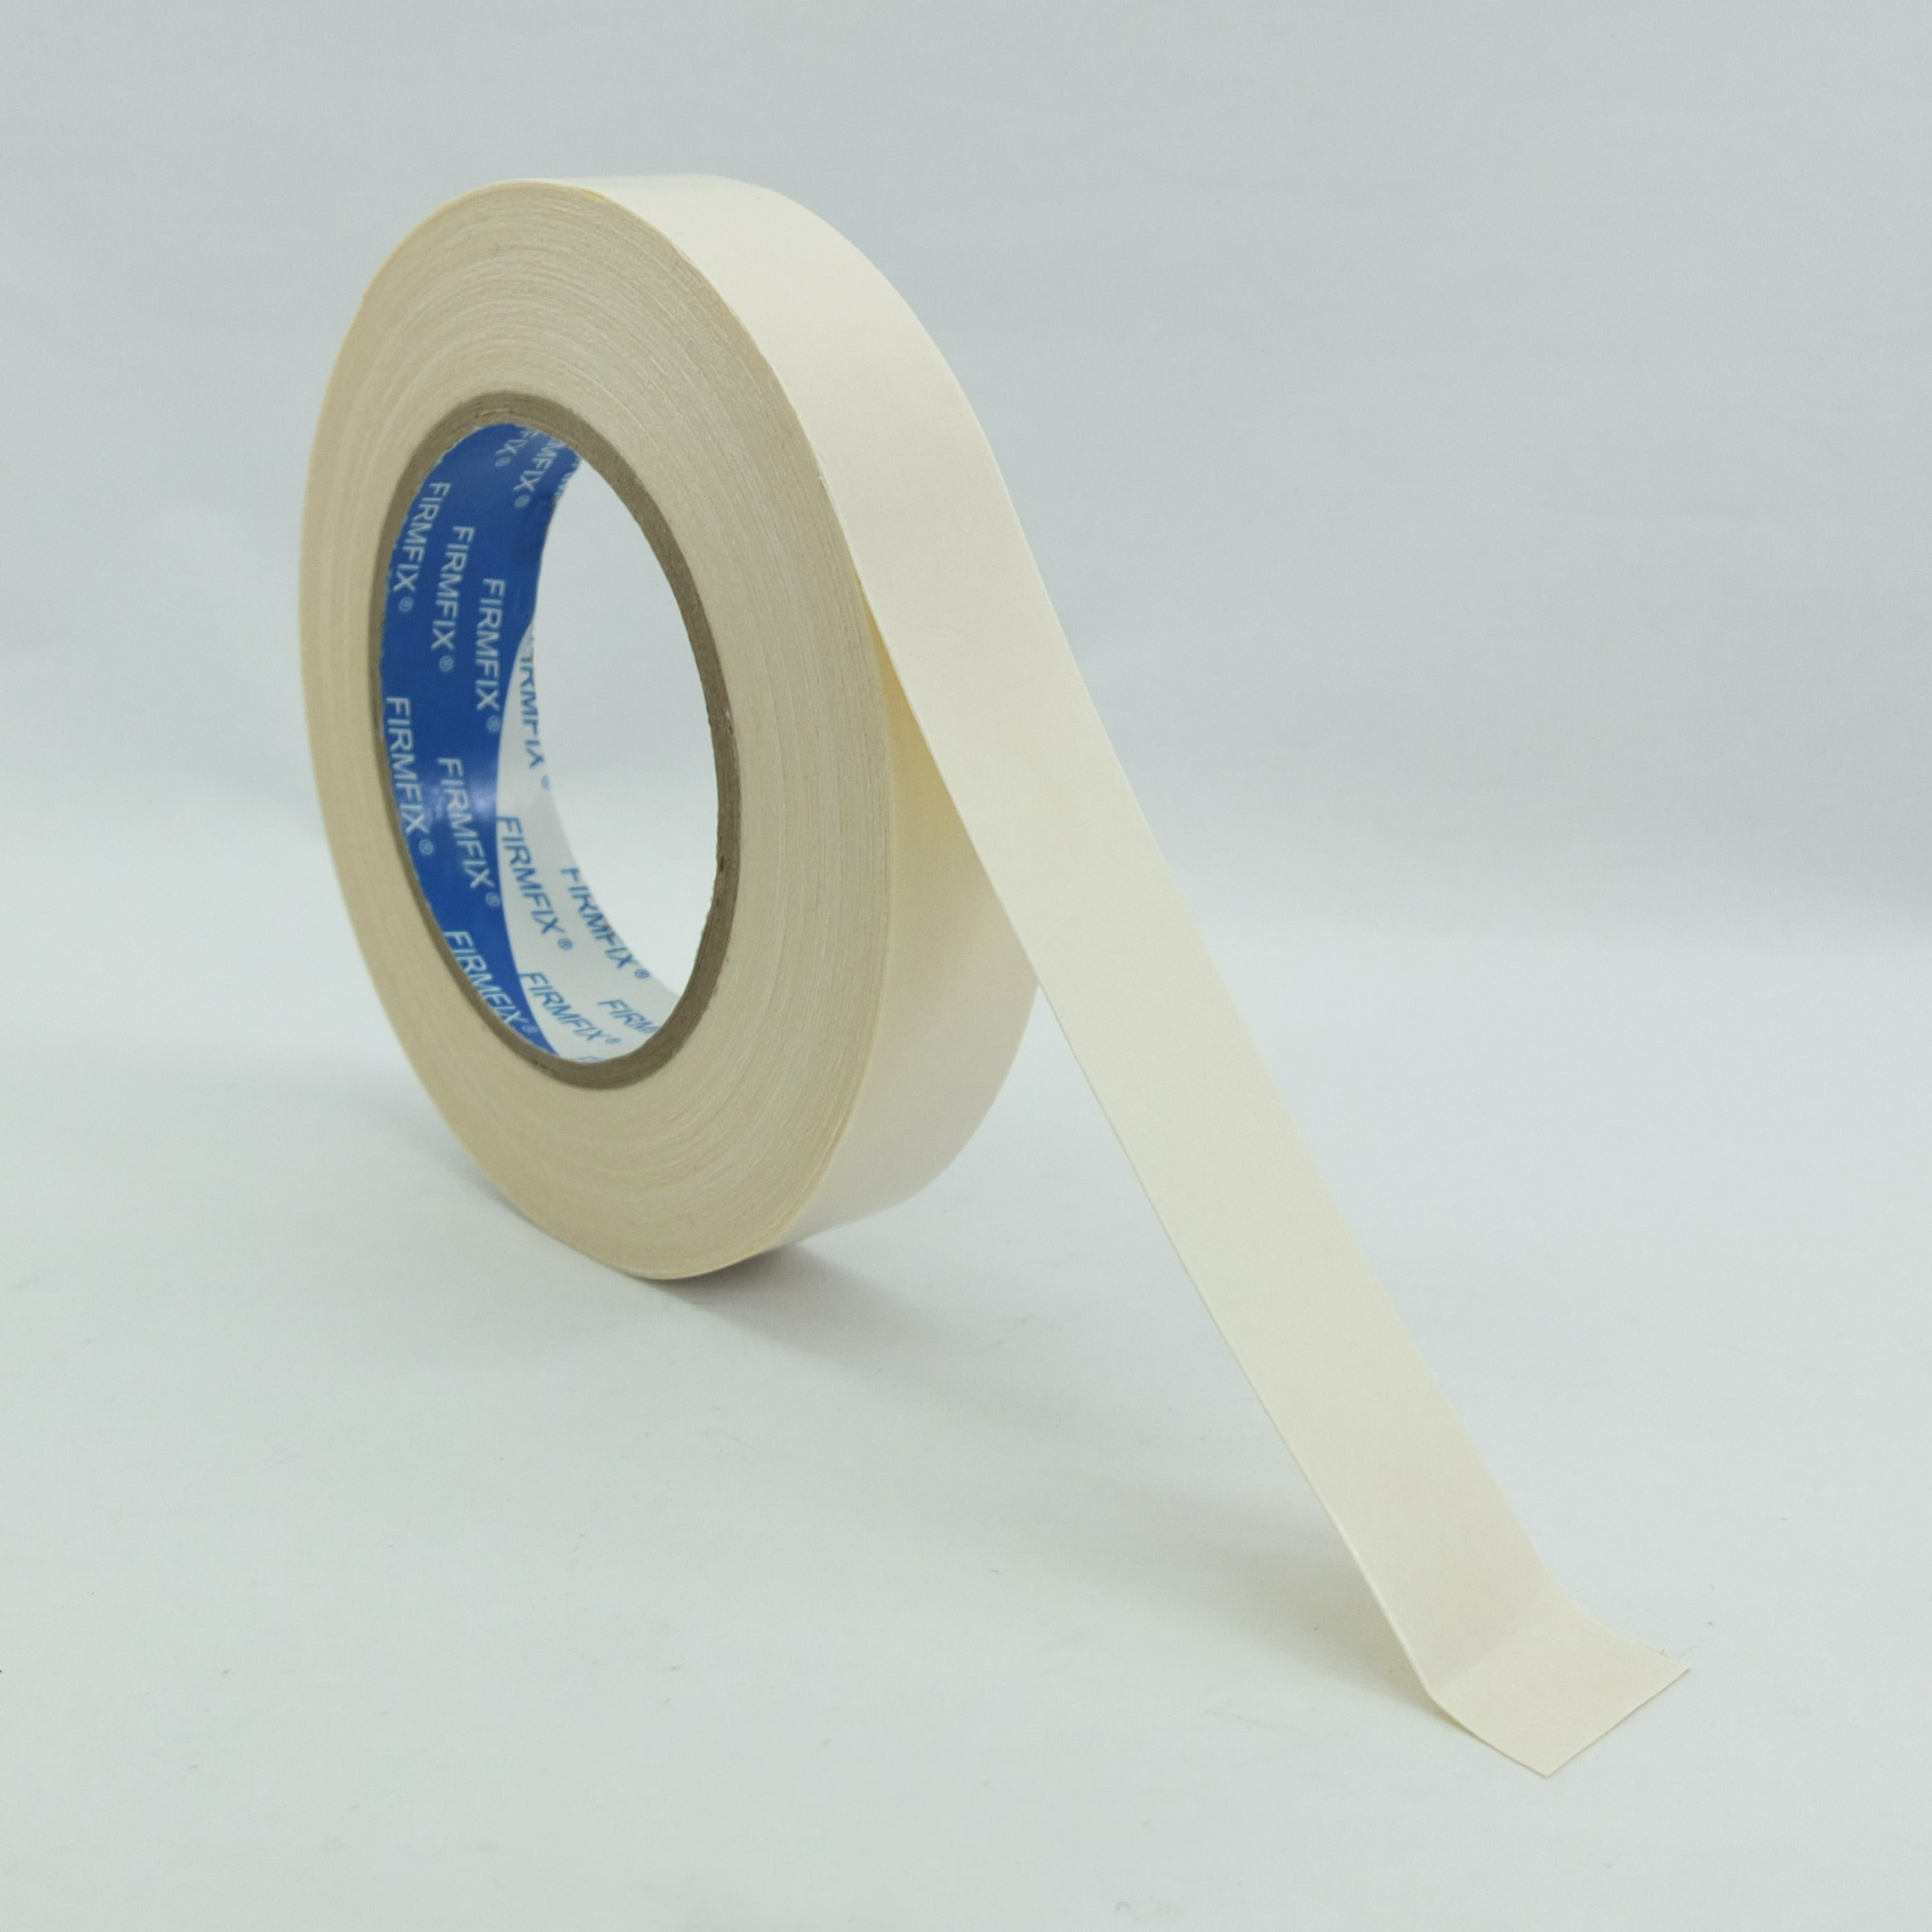 FIRMFIX 1460 Exhibition Carpet Tape